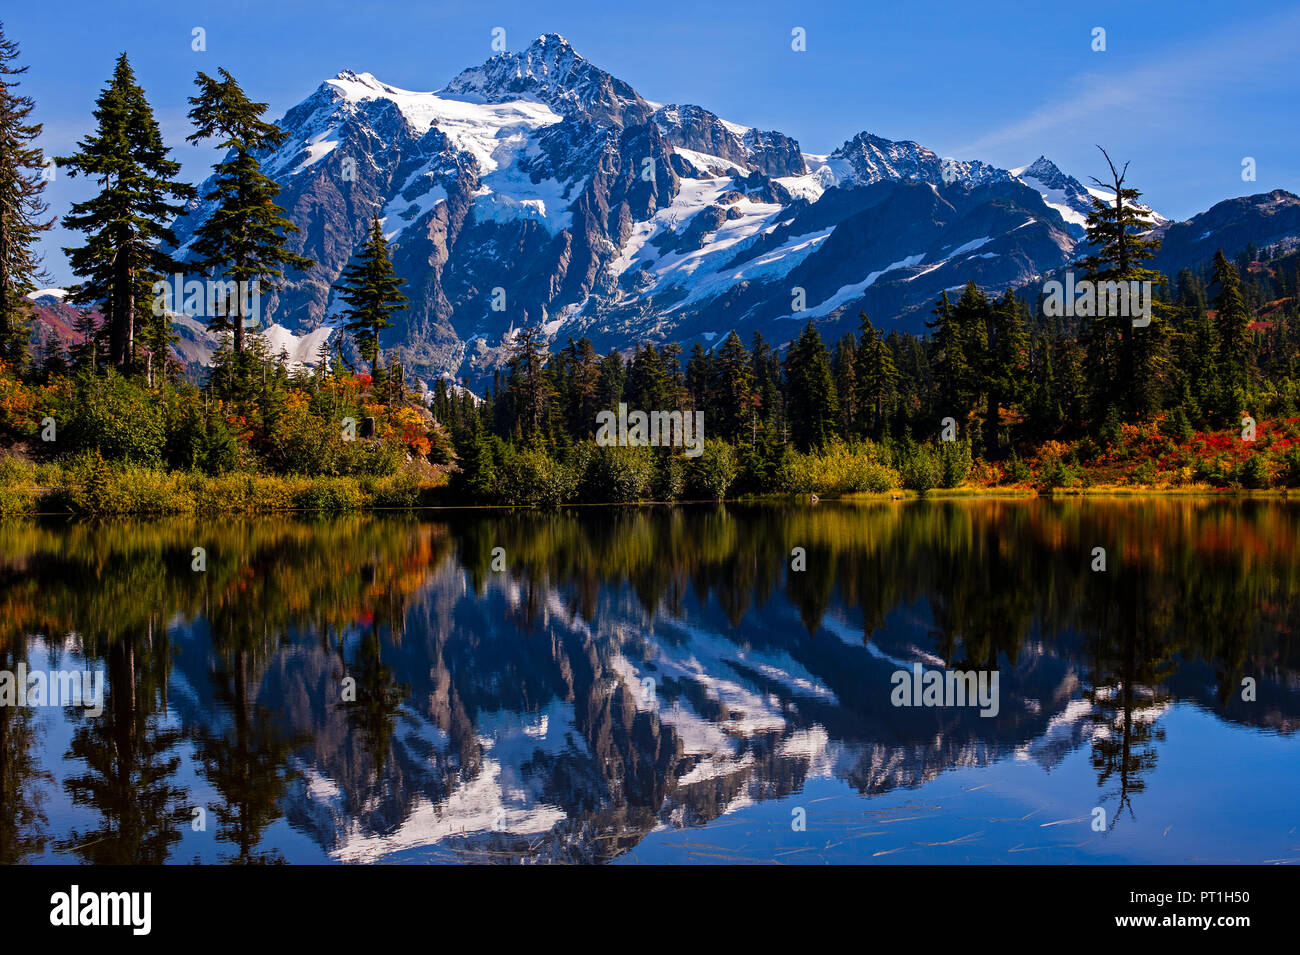 Picture Lake With Autumn Colors And Mount Shuksan In Background Reflected  In Mountain Lake Washington State USA